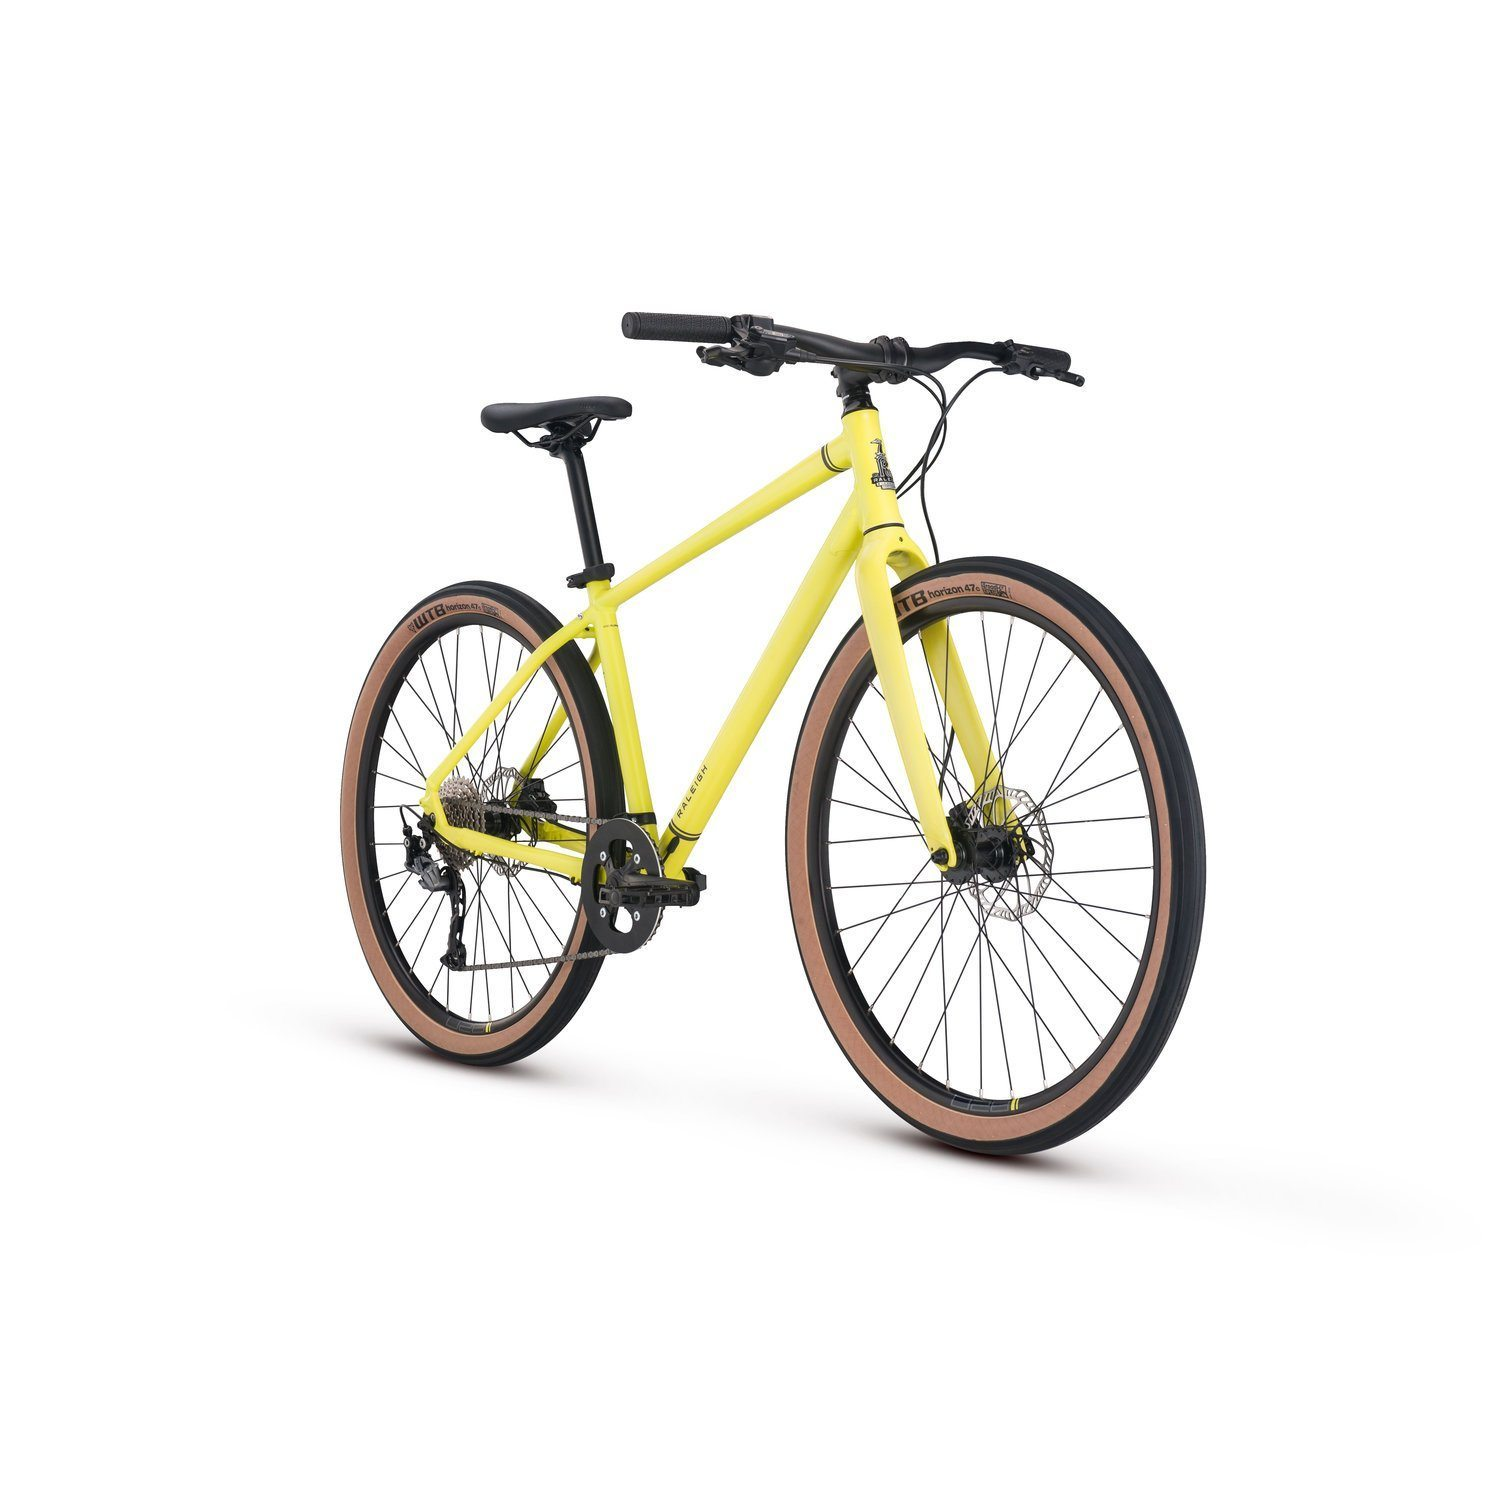 Raleigh-Redux-2-yellow-front.jpg